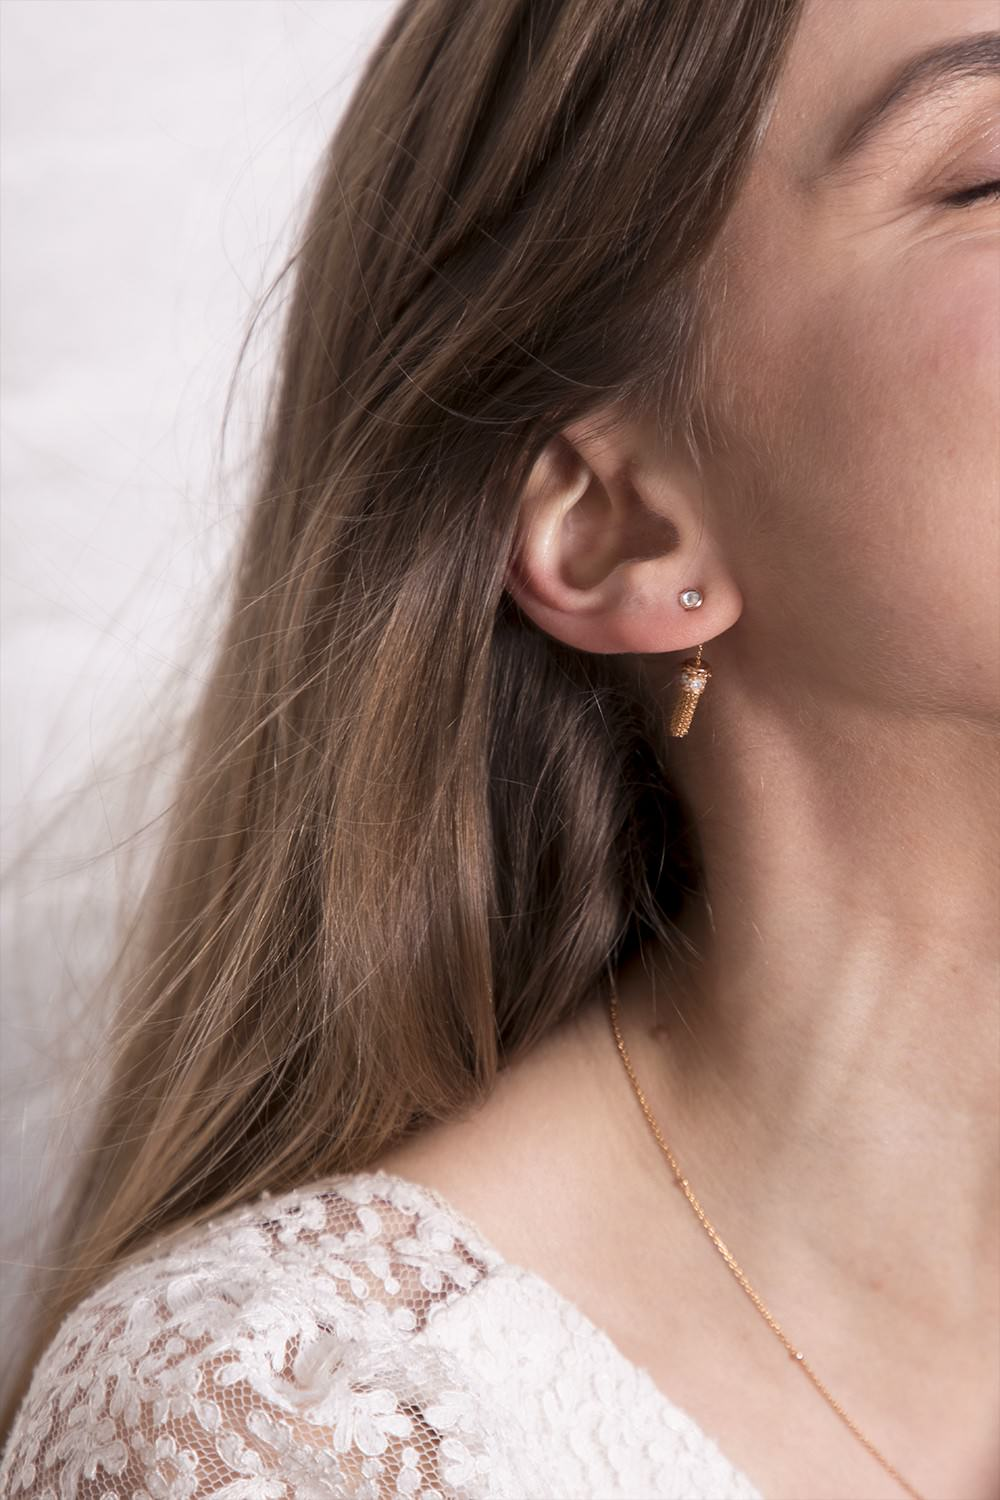 L' INNOCENCE earrings